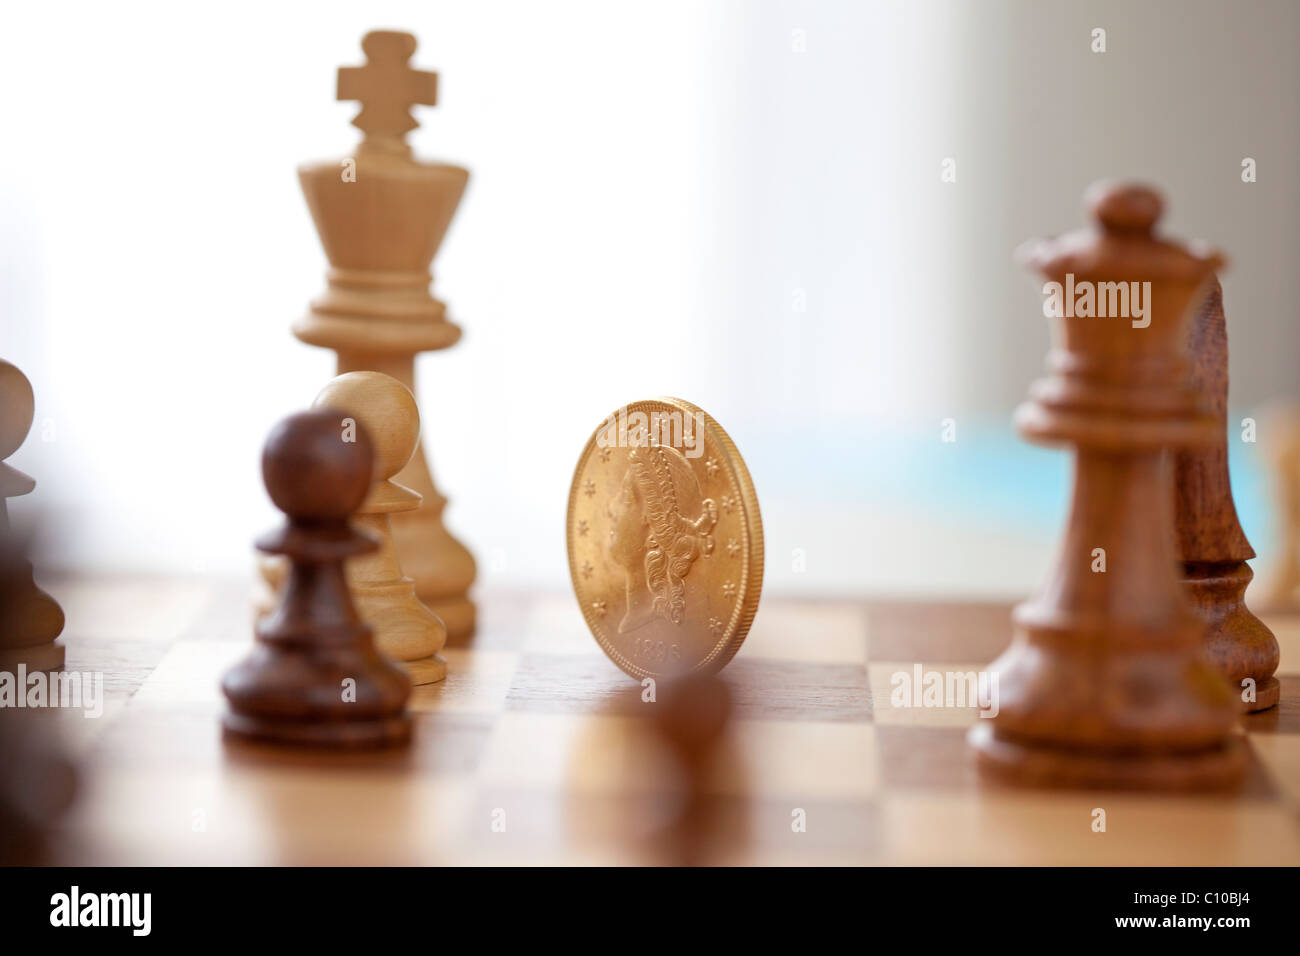 gold coin player in chess game - Stock Image